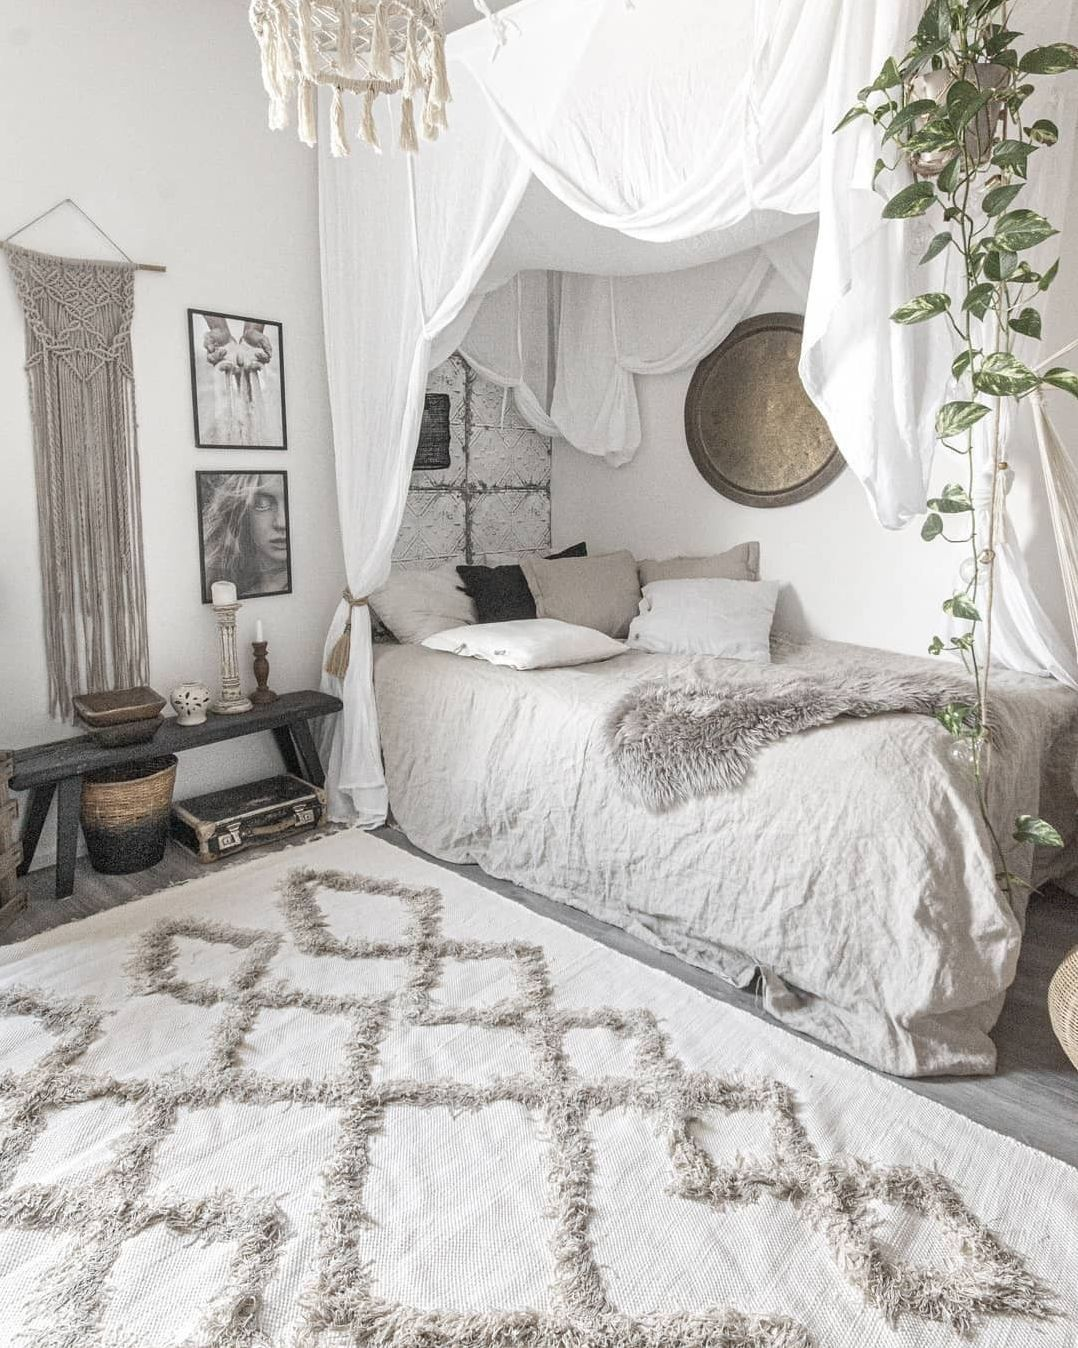 20 Creative Bohemian Bedroom Design Ideas You Must Try en 20